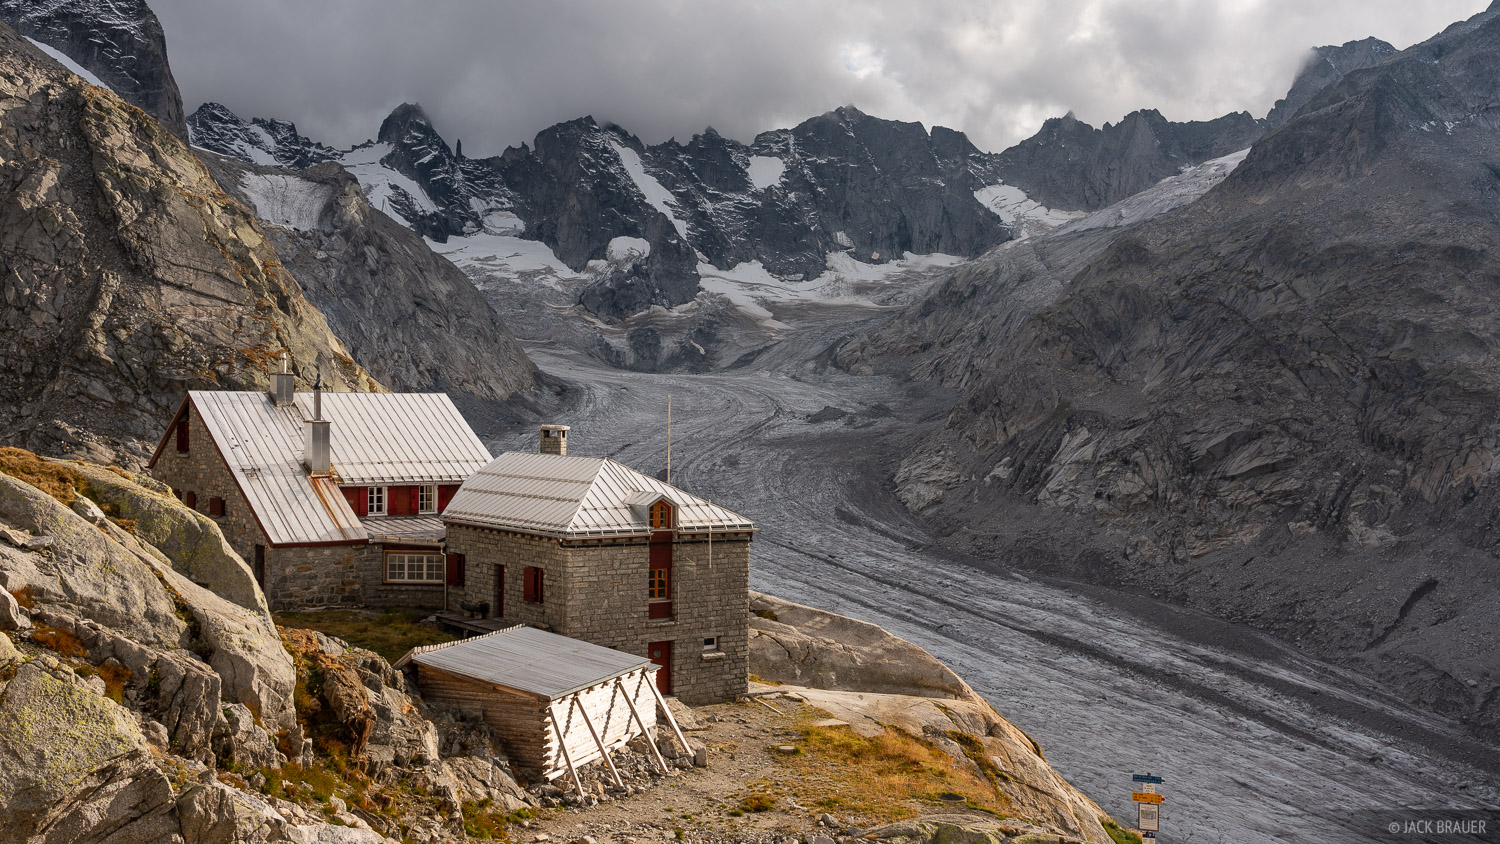 Bernina Range, Capanna del Forno, Forno Glacier, Rhaetian Alps, Switzerland, Vadret de Forno, hut, photo